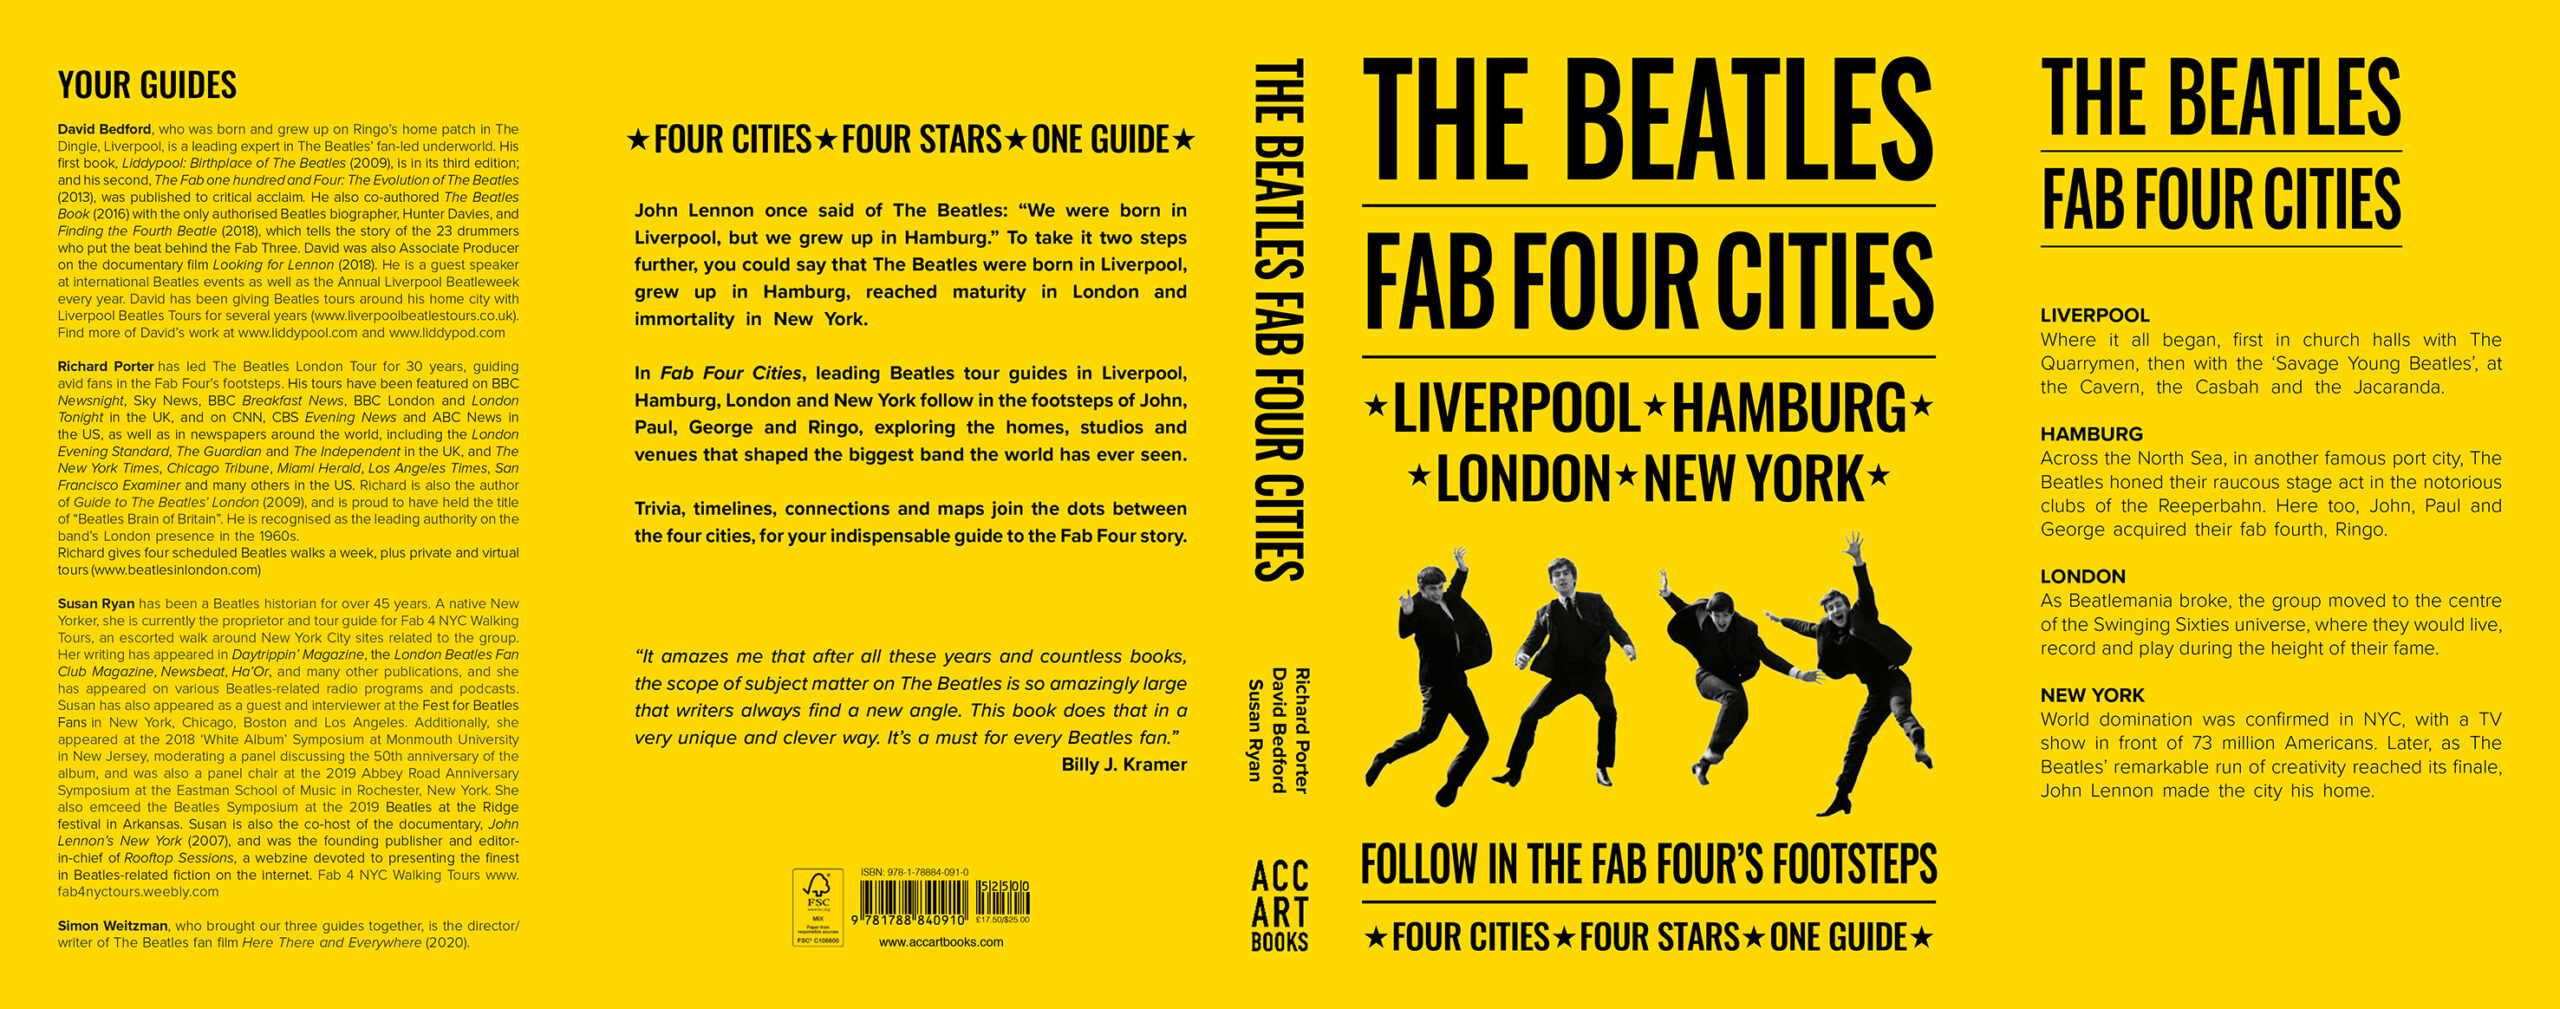 The Beatles Fab Four Cities - Liverpool, Hamburg, London and New York